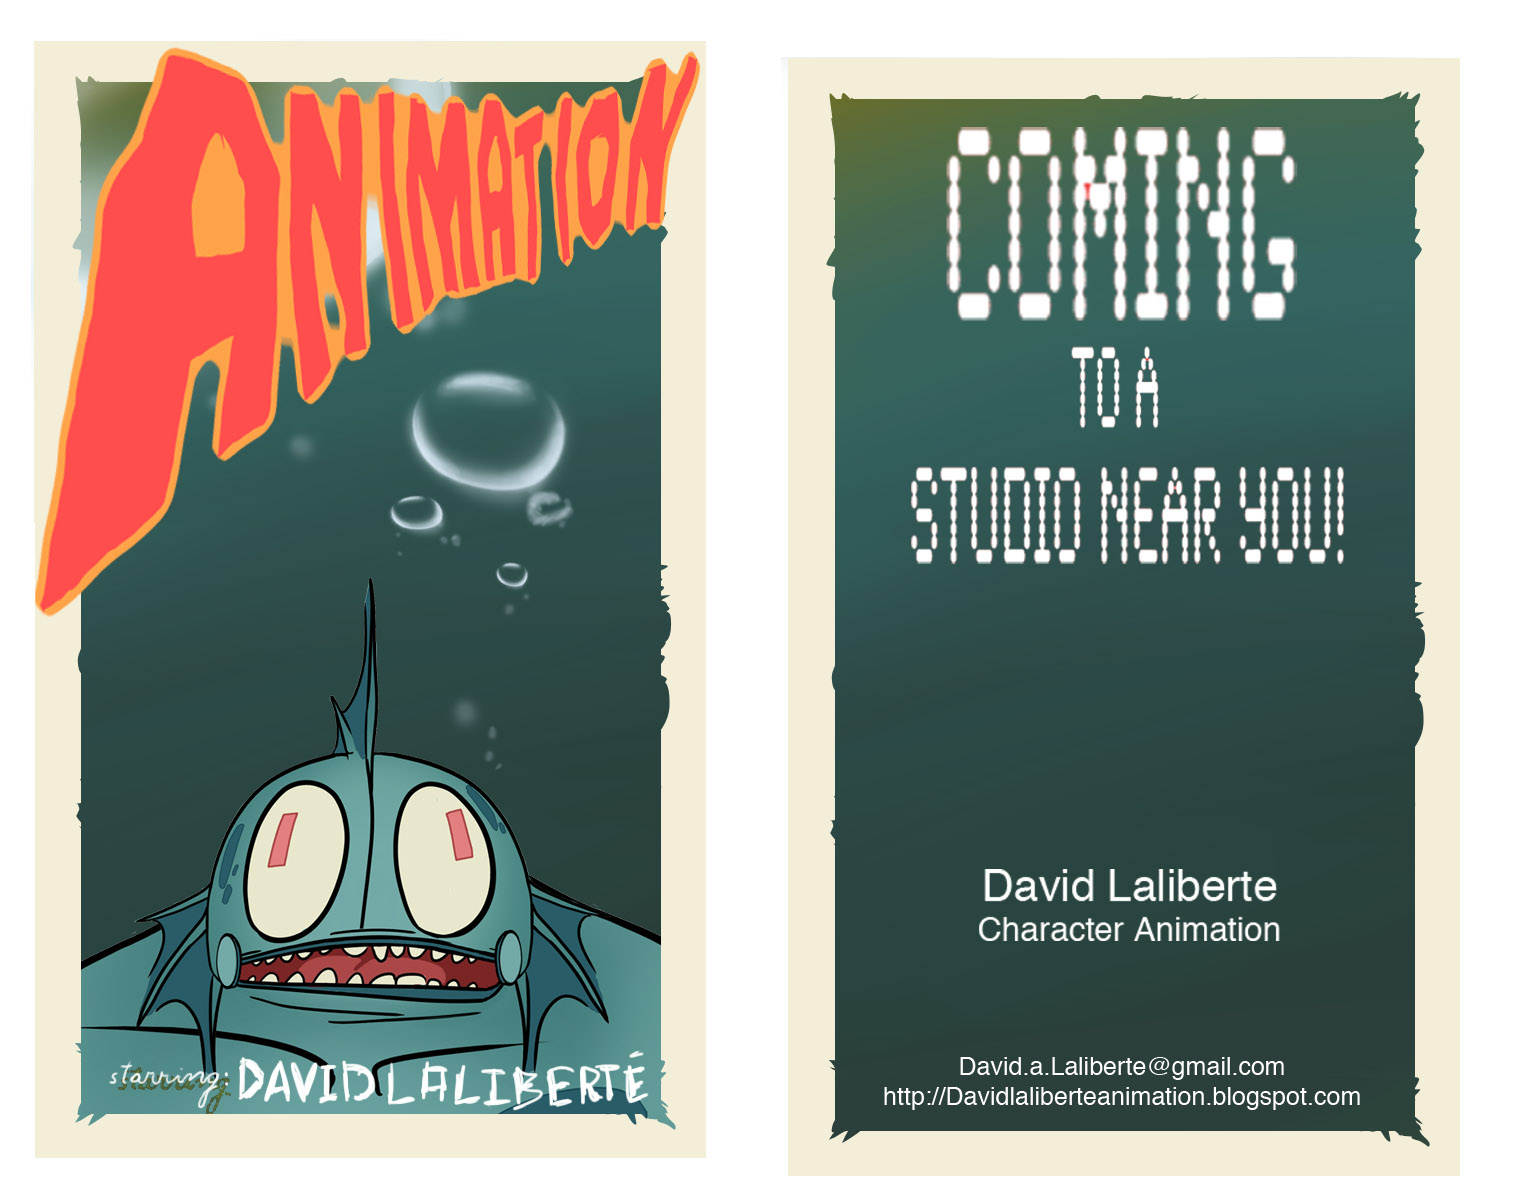 David laliberte animation business card ideas here are the two business card ideas i had colourmoves